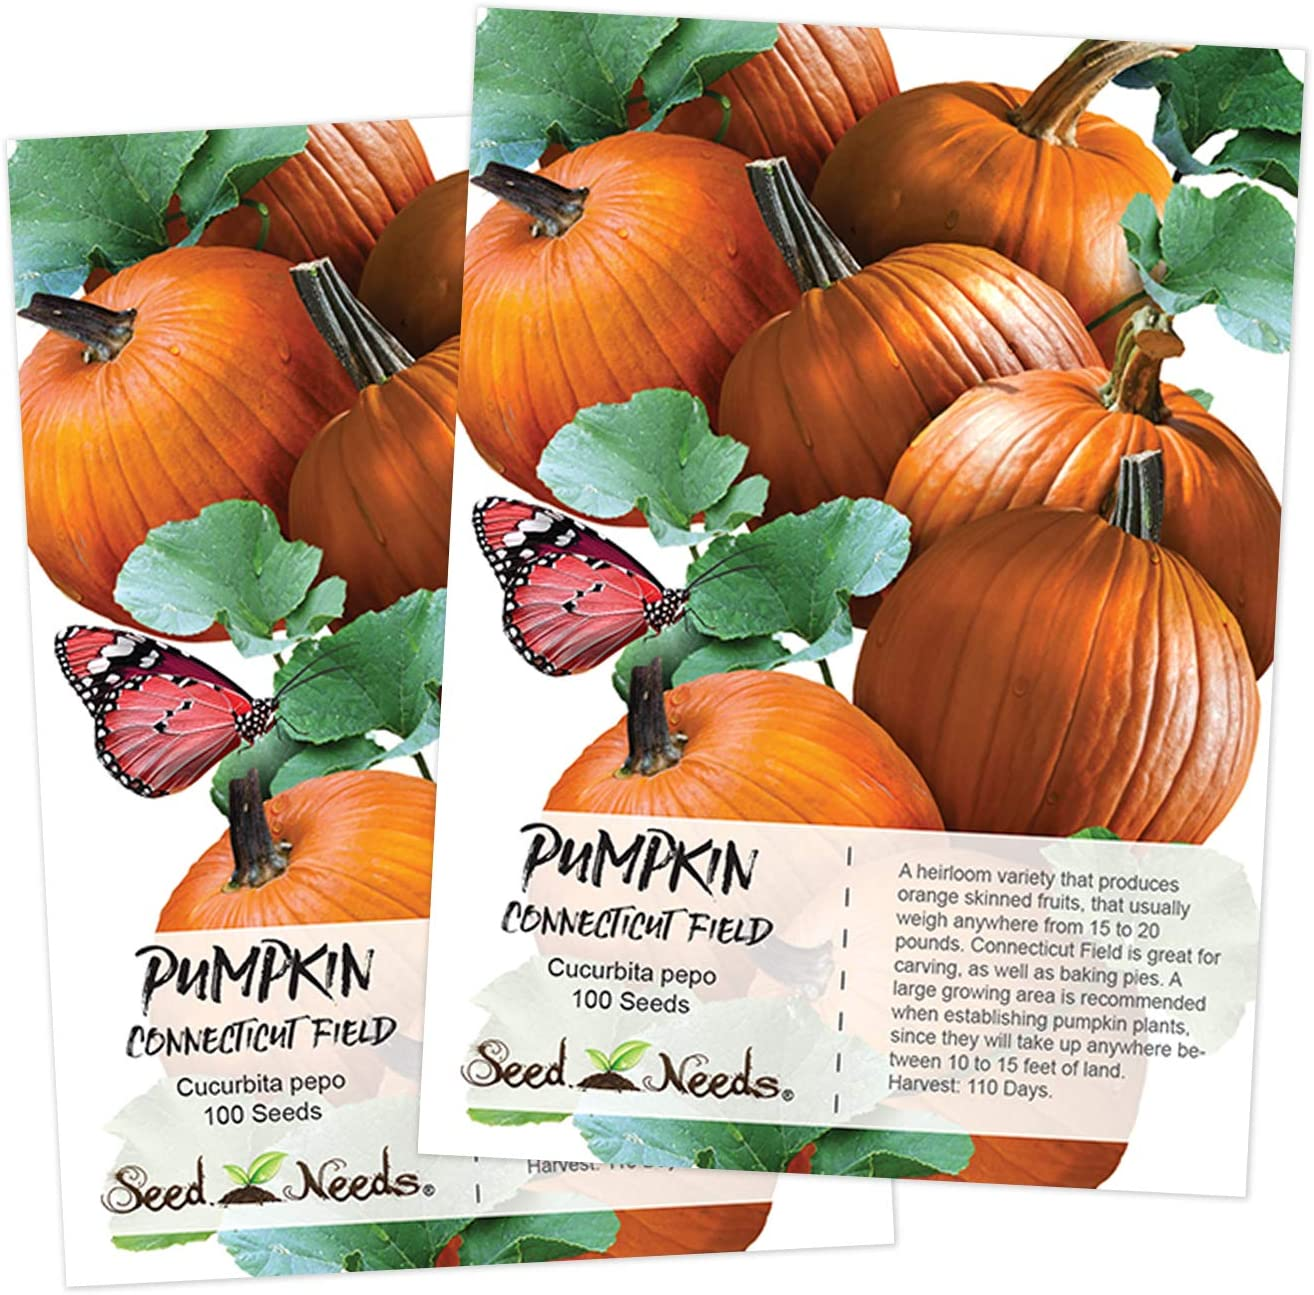 Seed Needs, Connecticut Fields Pumpkin (Cucurbita pepo) 2 Packages of 100 Seeds NON-GMO